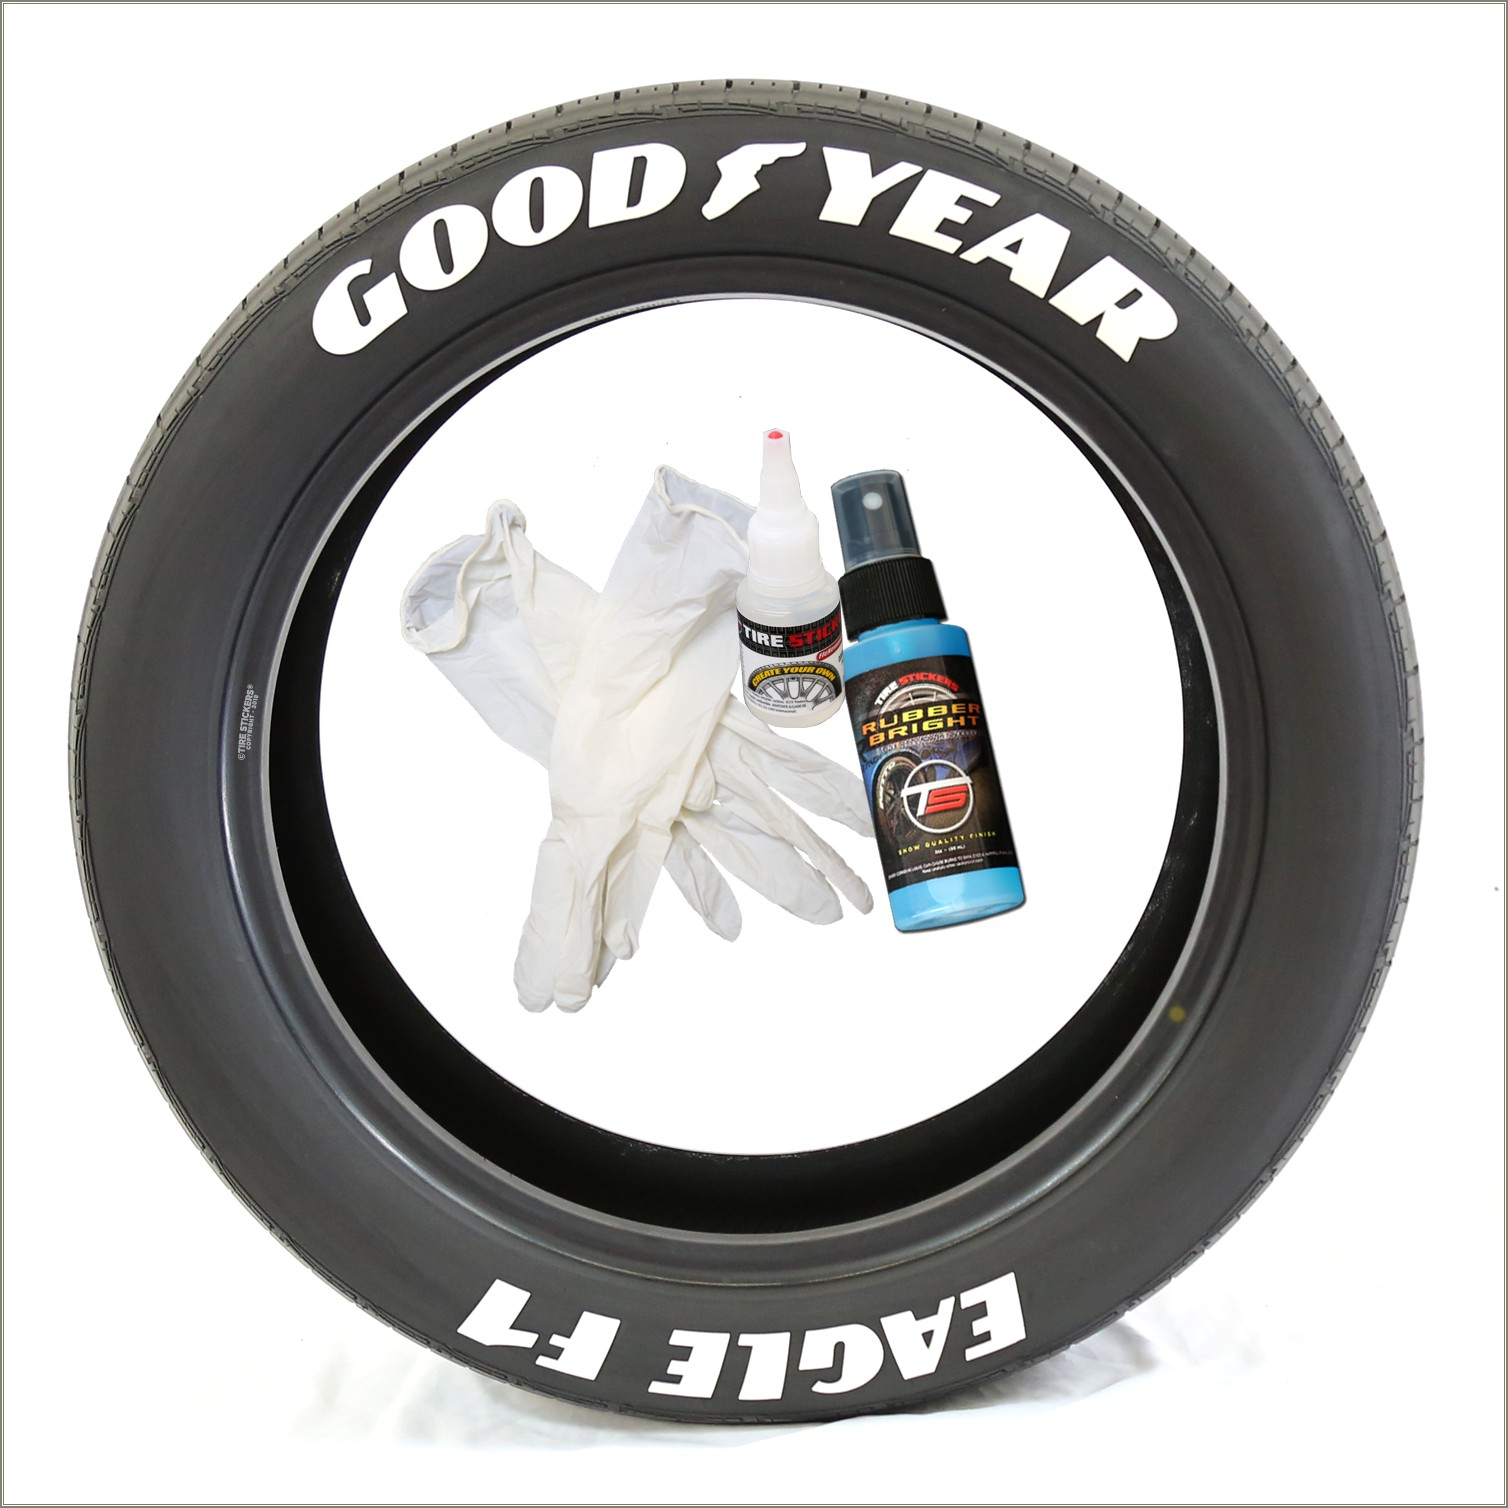 Goodyear Eagle Raised White Letter Tires